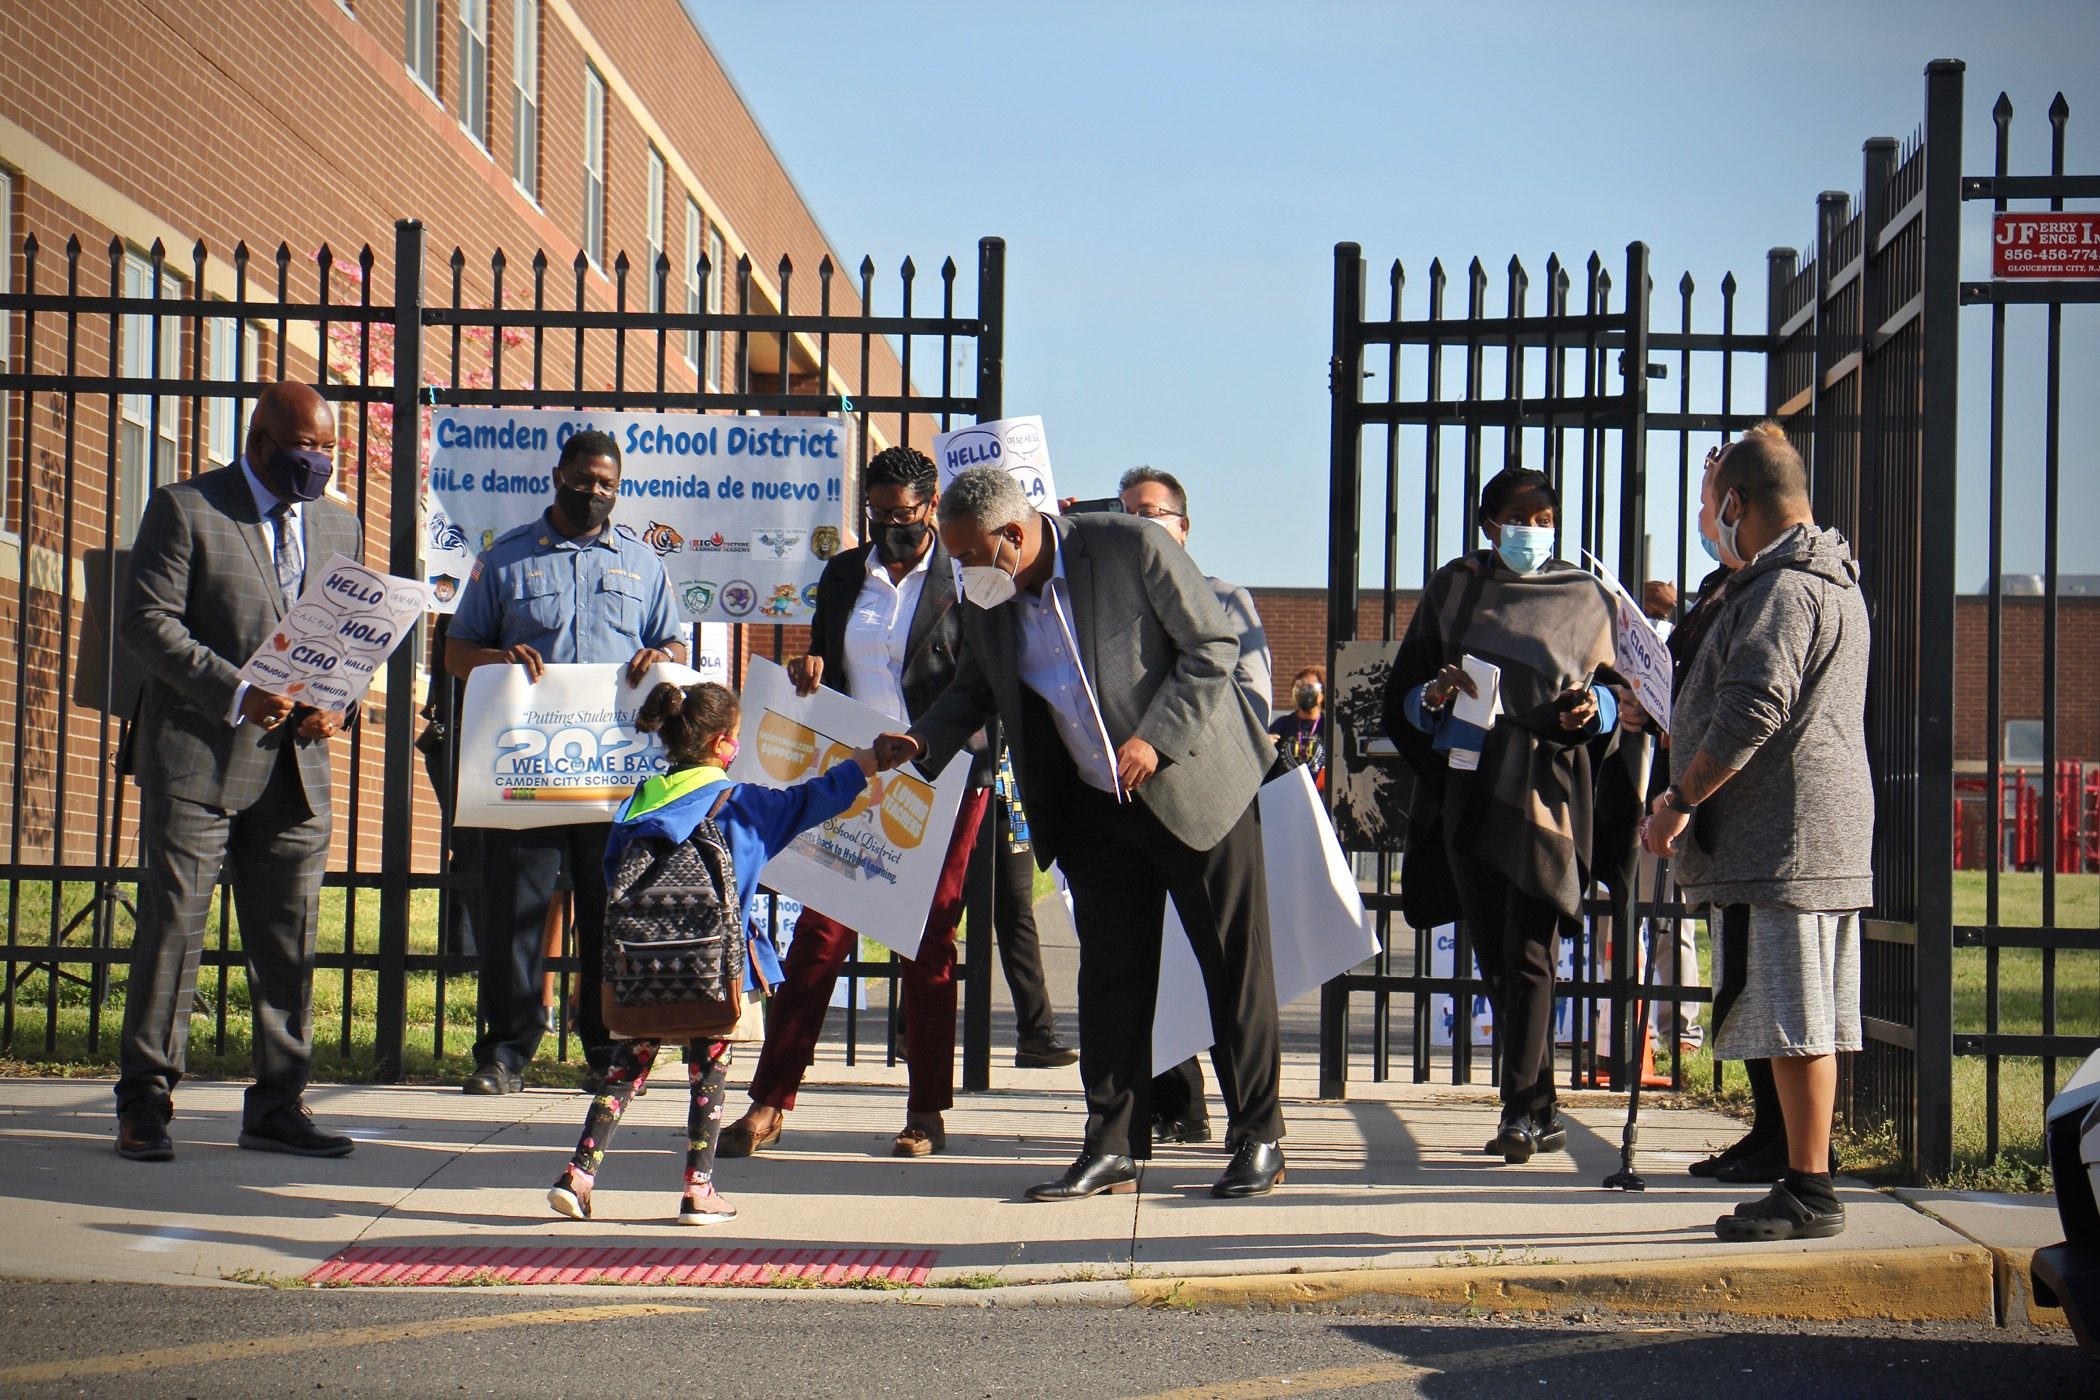 Students arriving at H.B. Wilson Elementary School